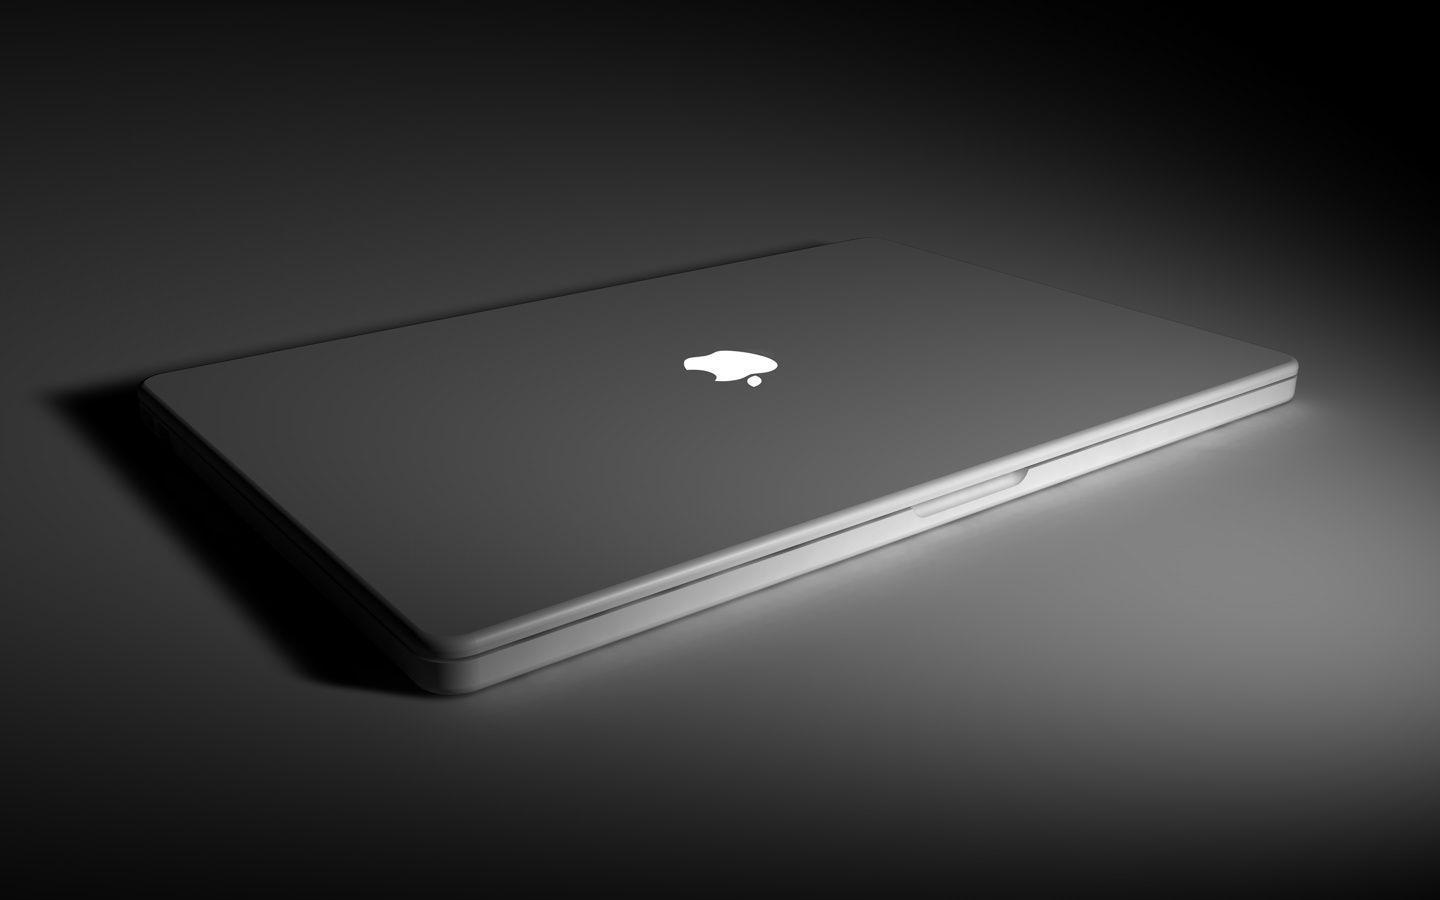 Macbook Hd Wallpaper